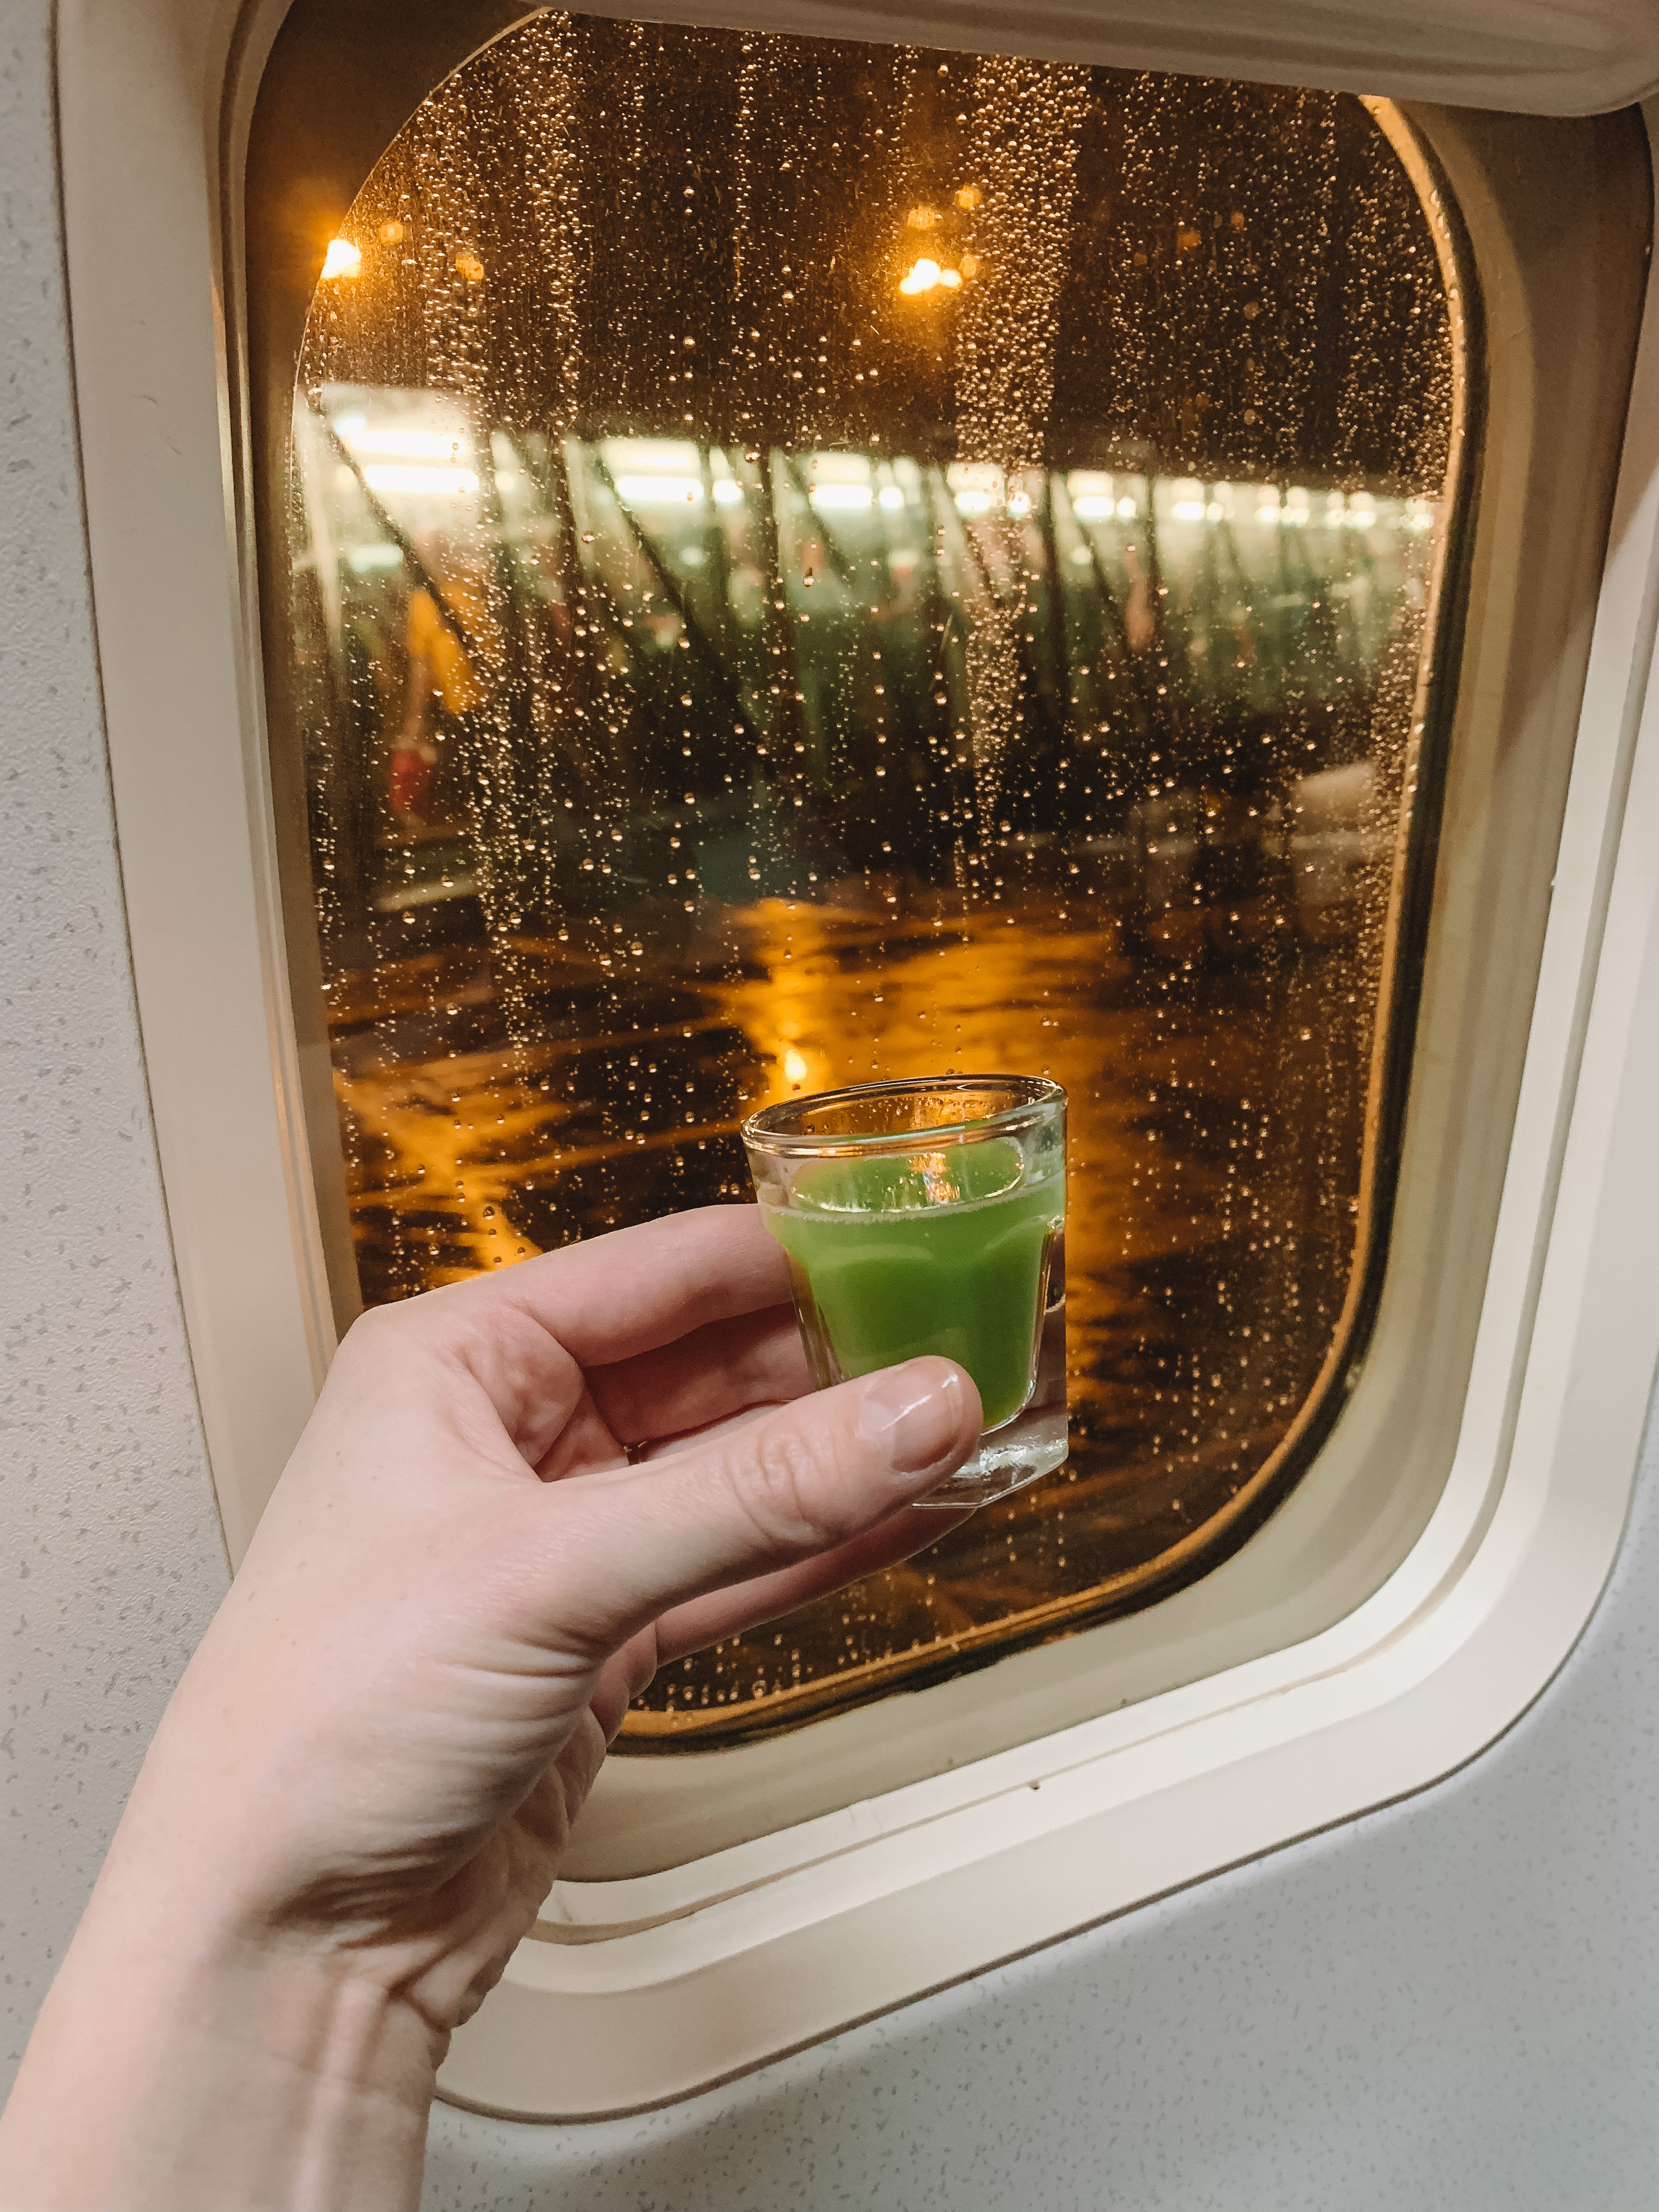 On the bright side, since I wasn't asleep I saw the northern lights from the plane! I immediately woke Doug up and we spent the next hour or so just staring at them. I was surprised that the lights look green in the picture, in real life they looked white!